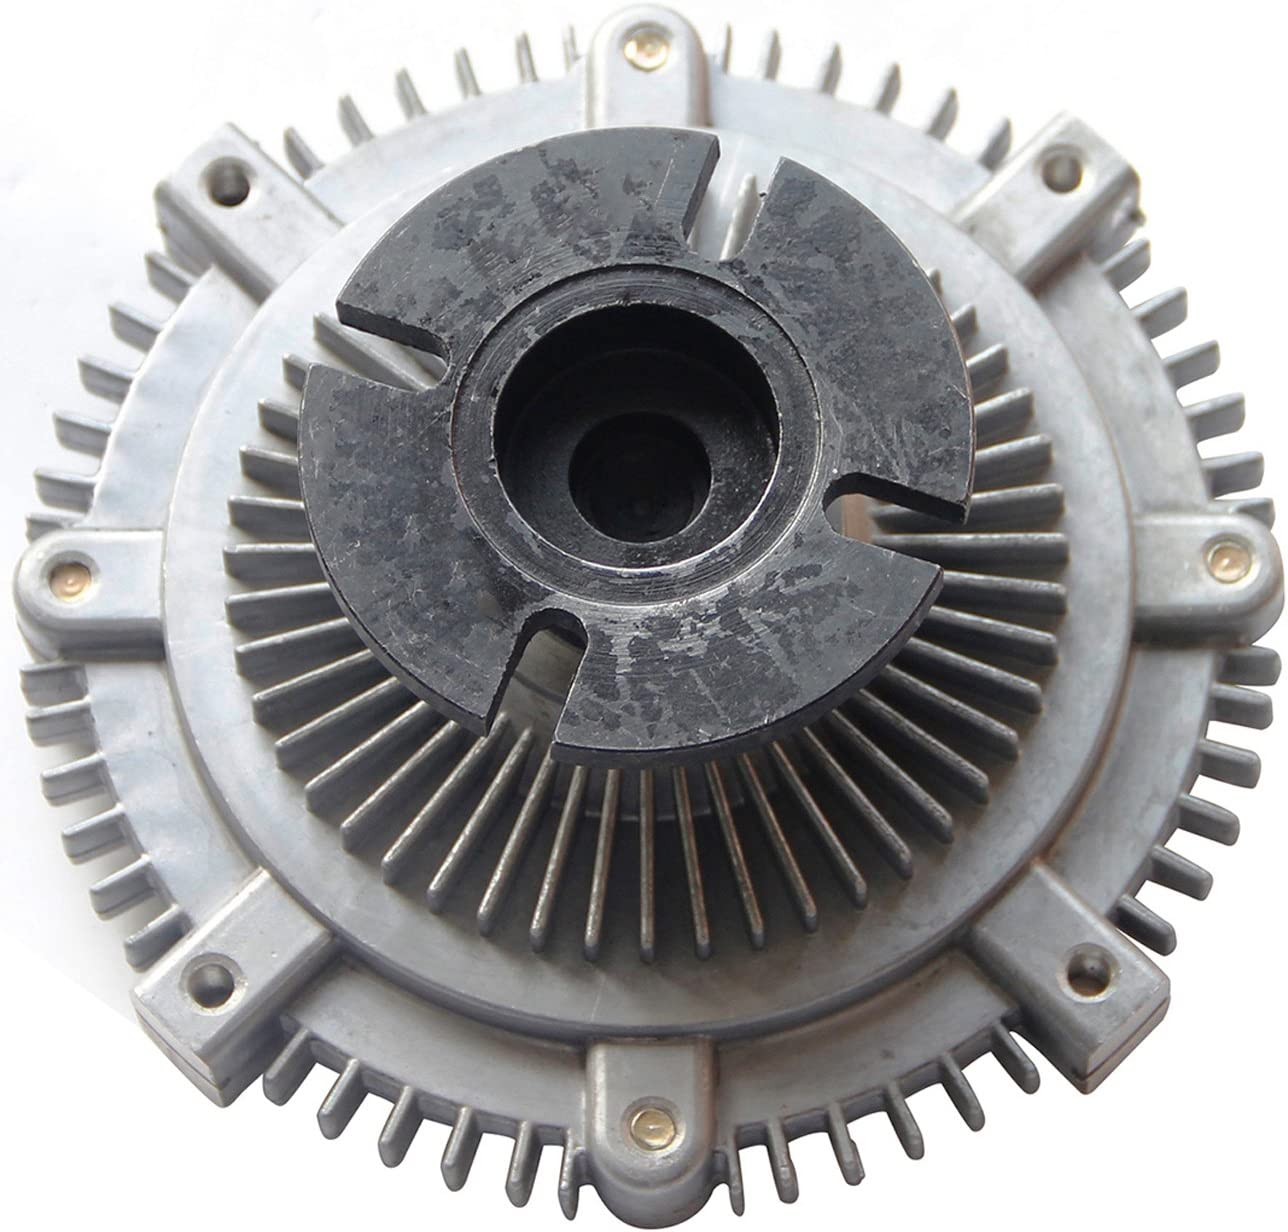 TOPAZ 2625 Engine Cooling Thermal Fan Clutch for Jeep Cherokee Wrangler Wagoneer Comanche 2.4L 2.5L 4.0L